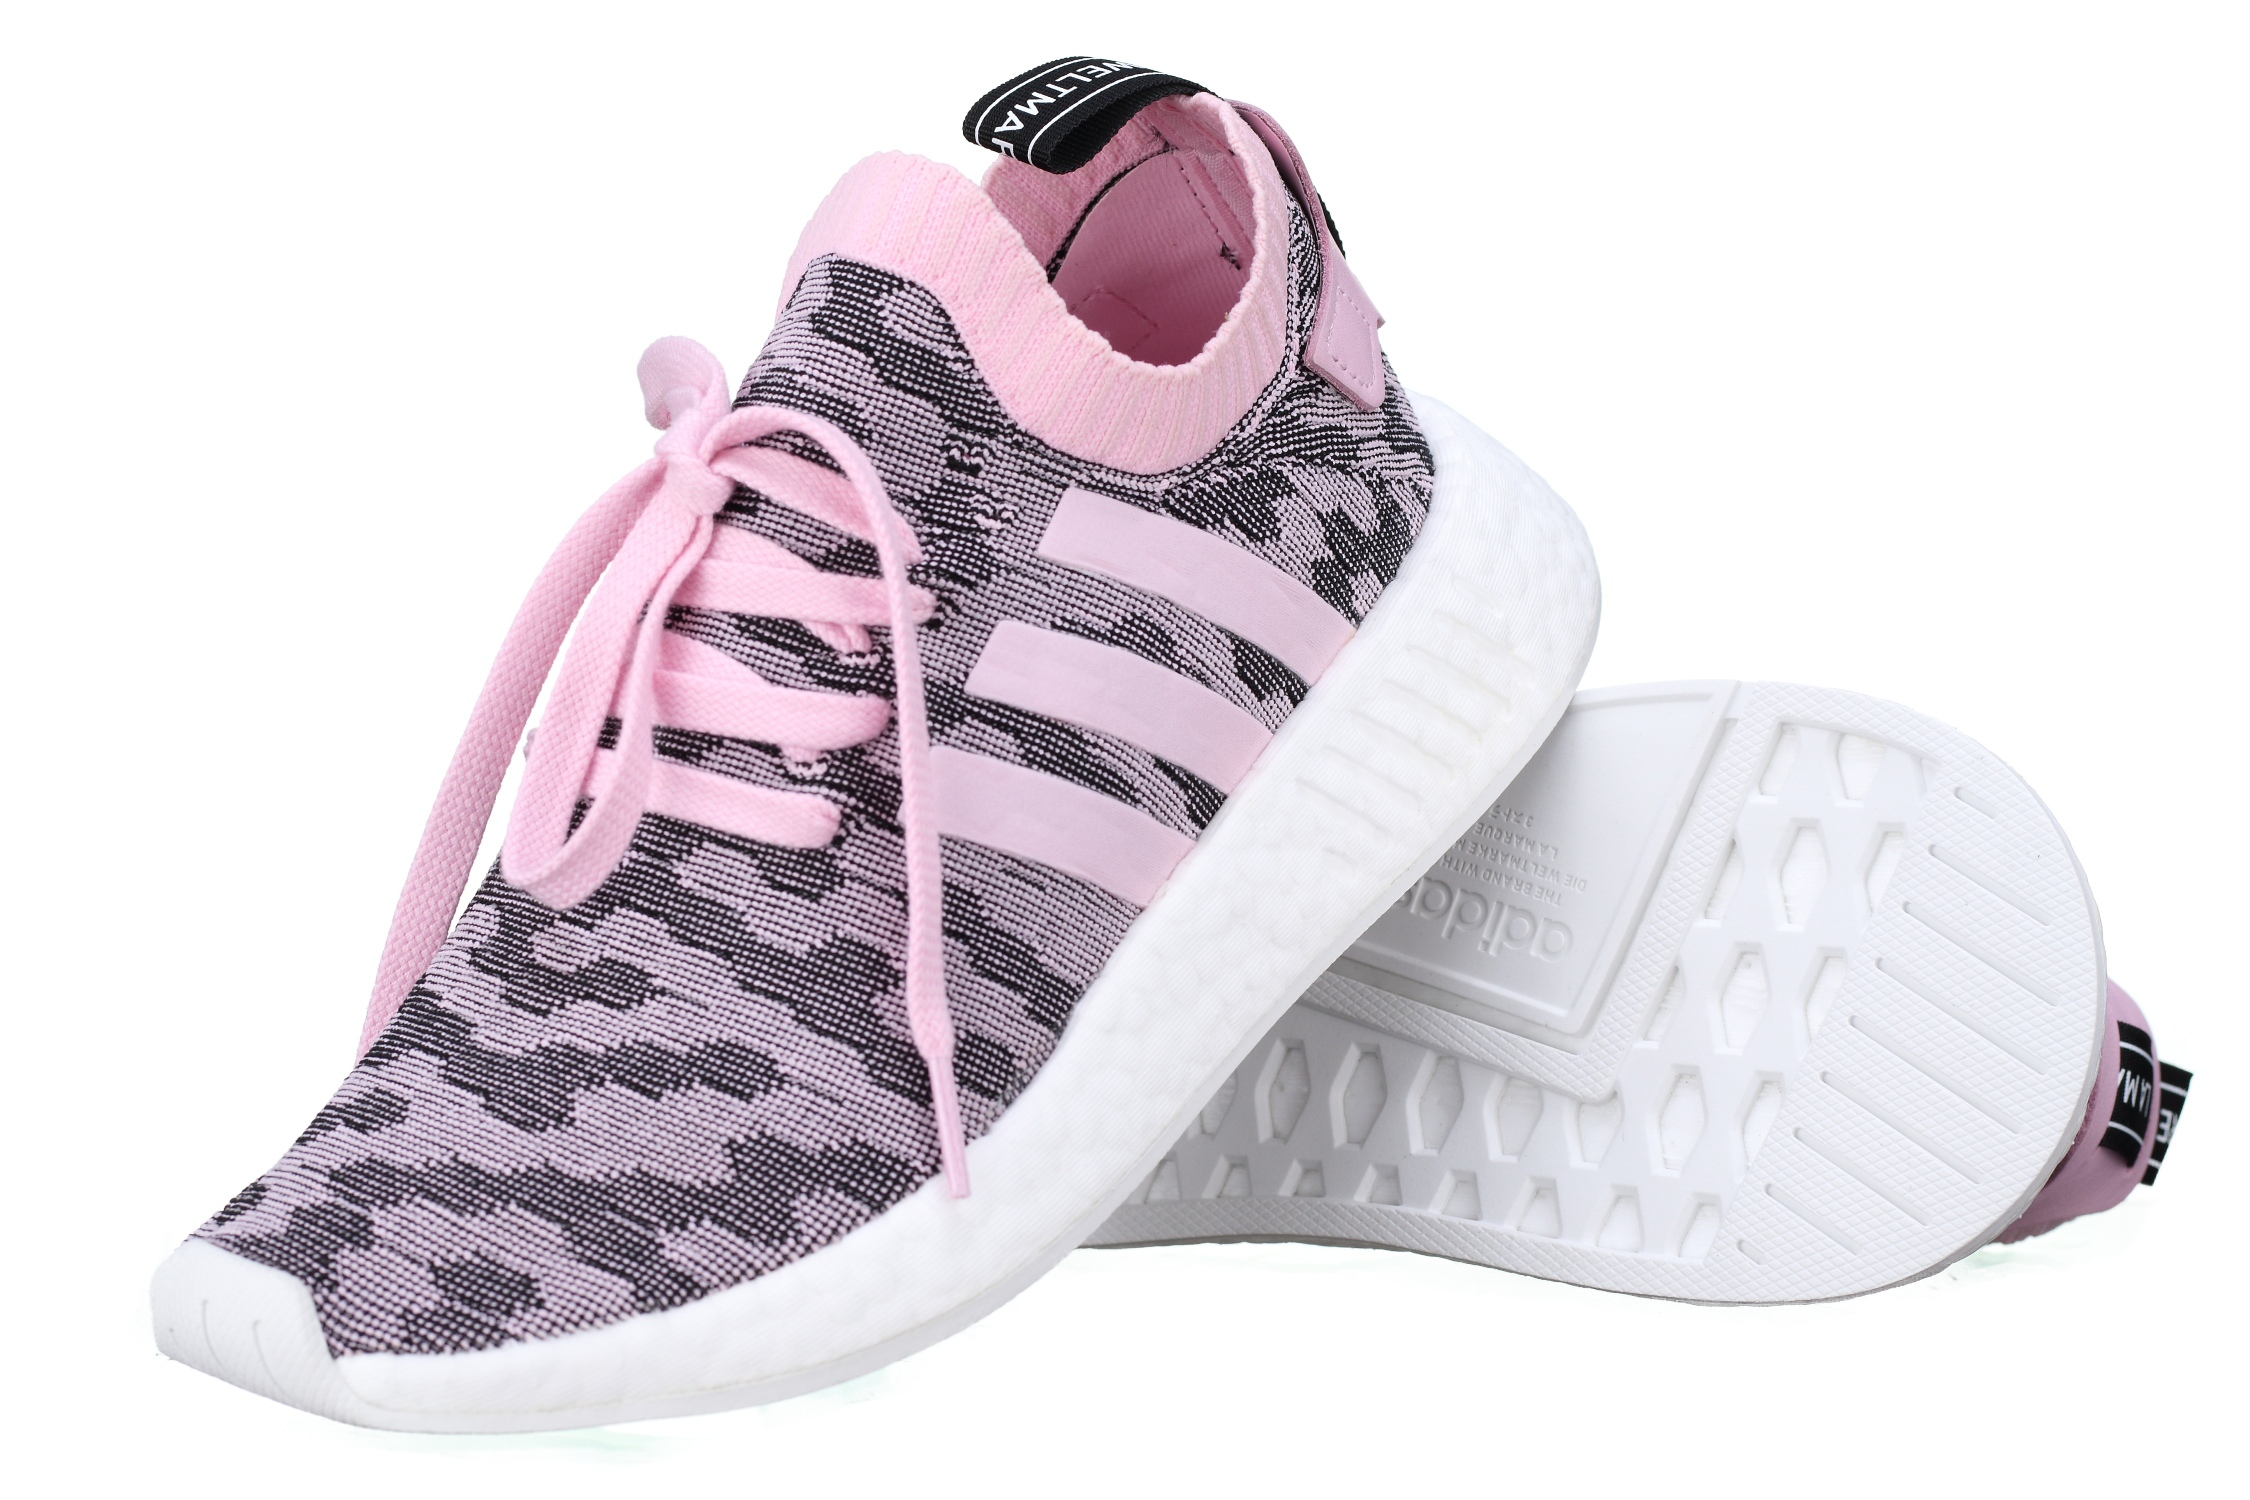 http://www.leadermode.com/128448/adidas-nmdr2-pk-w-by9521-rose.jpg